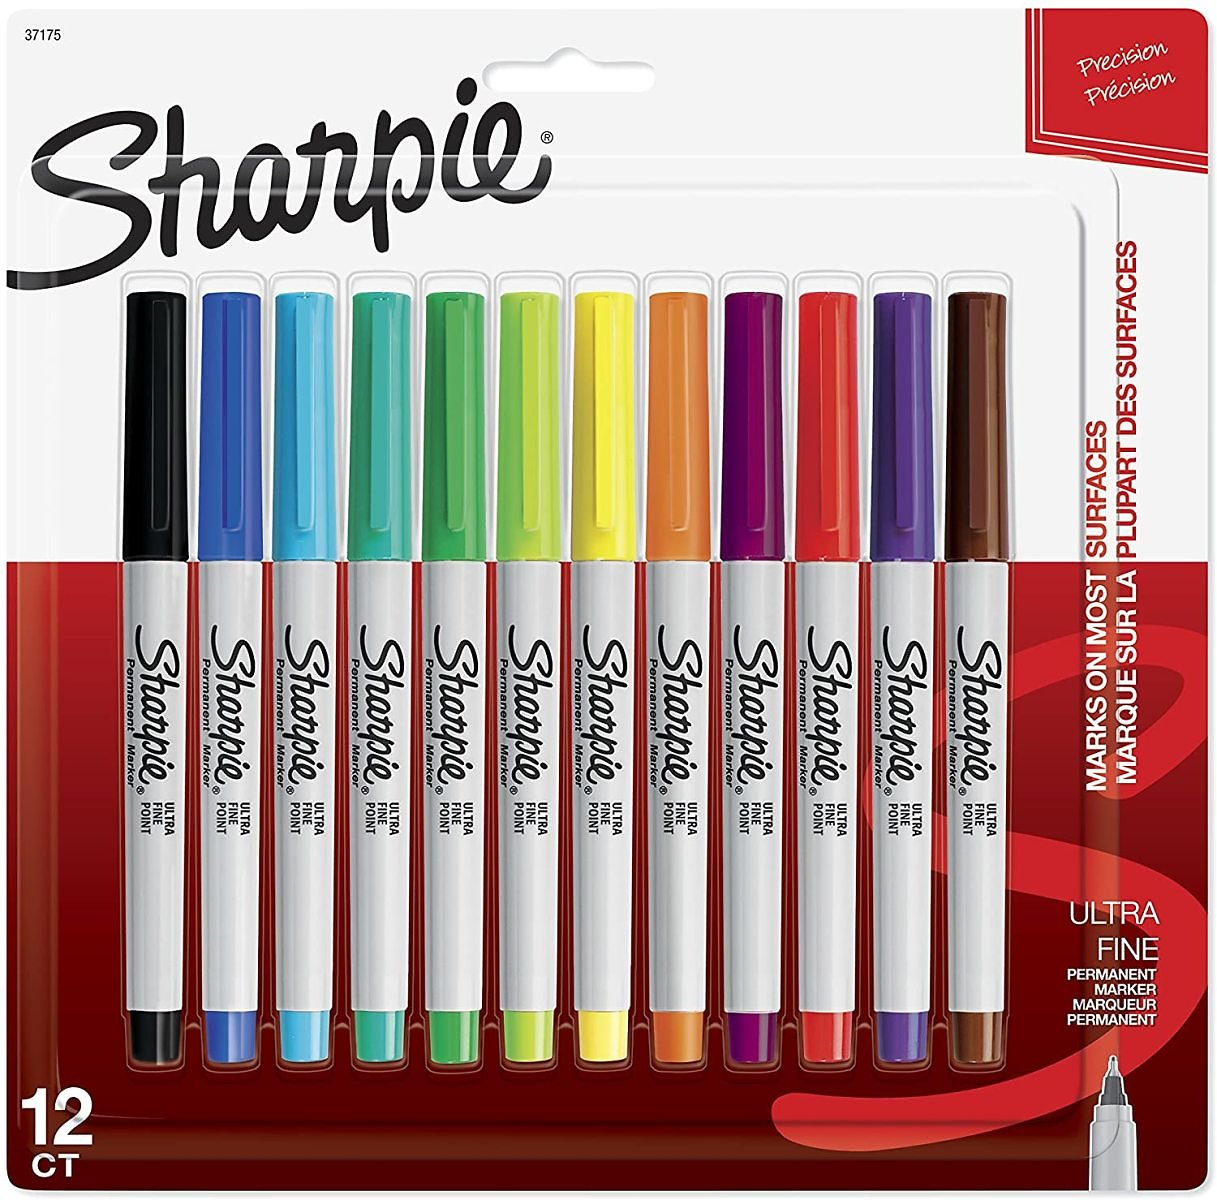 Sharpie 37175 Permanent Markers, Ultra-Fine Point, Assorted Colors, 12 Pack